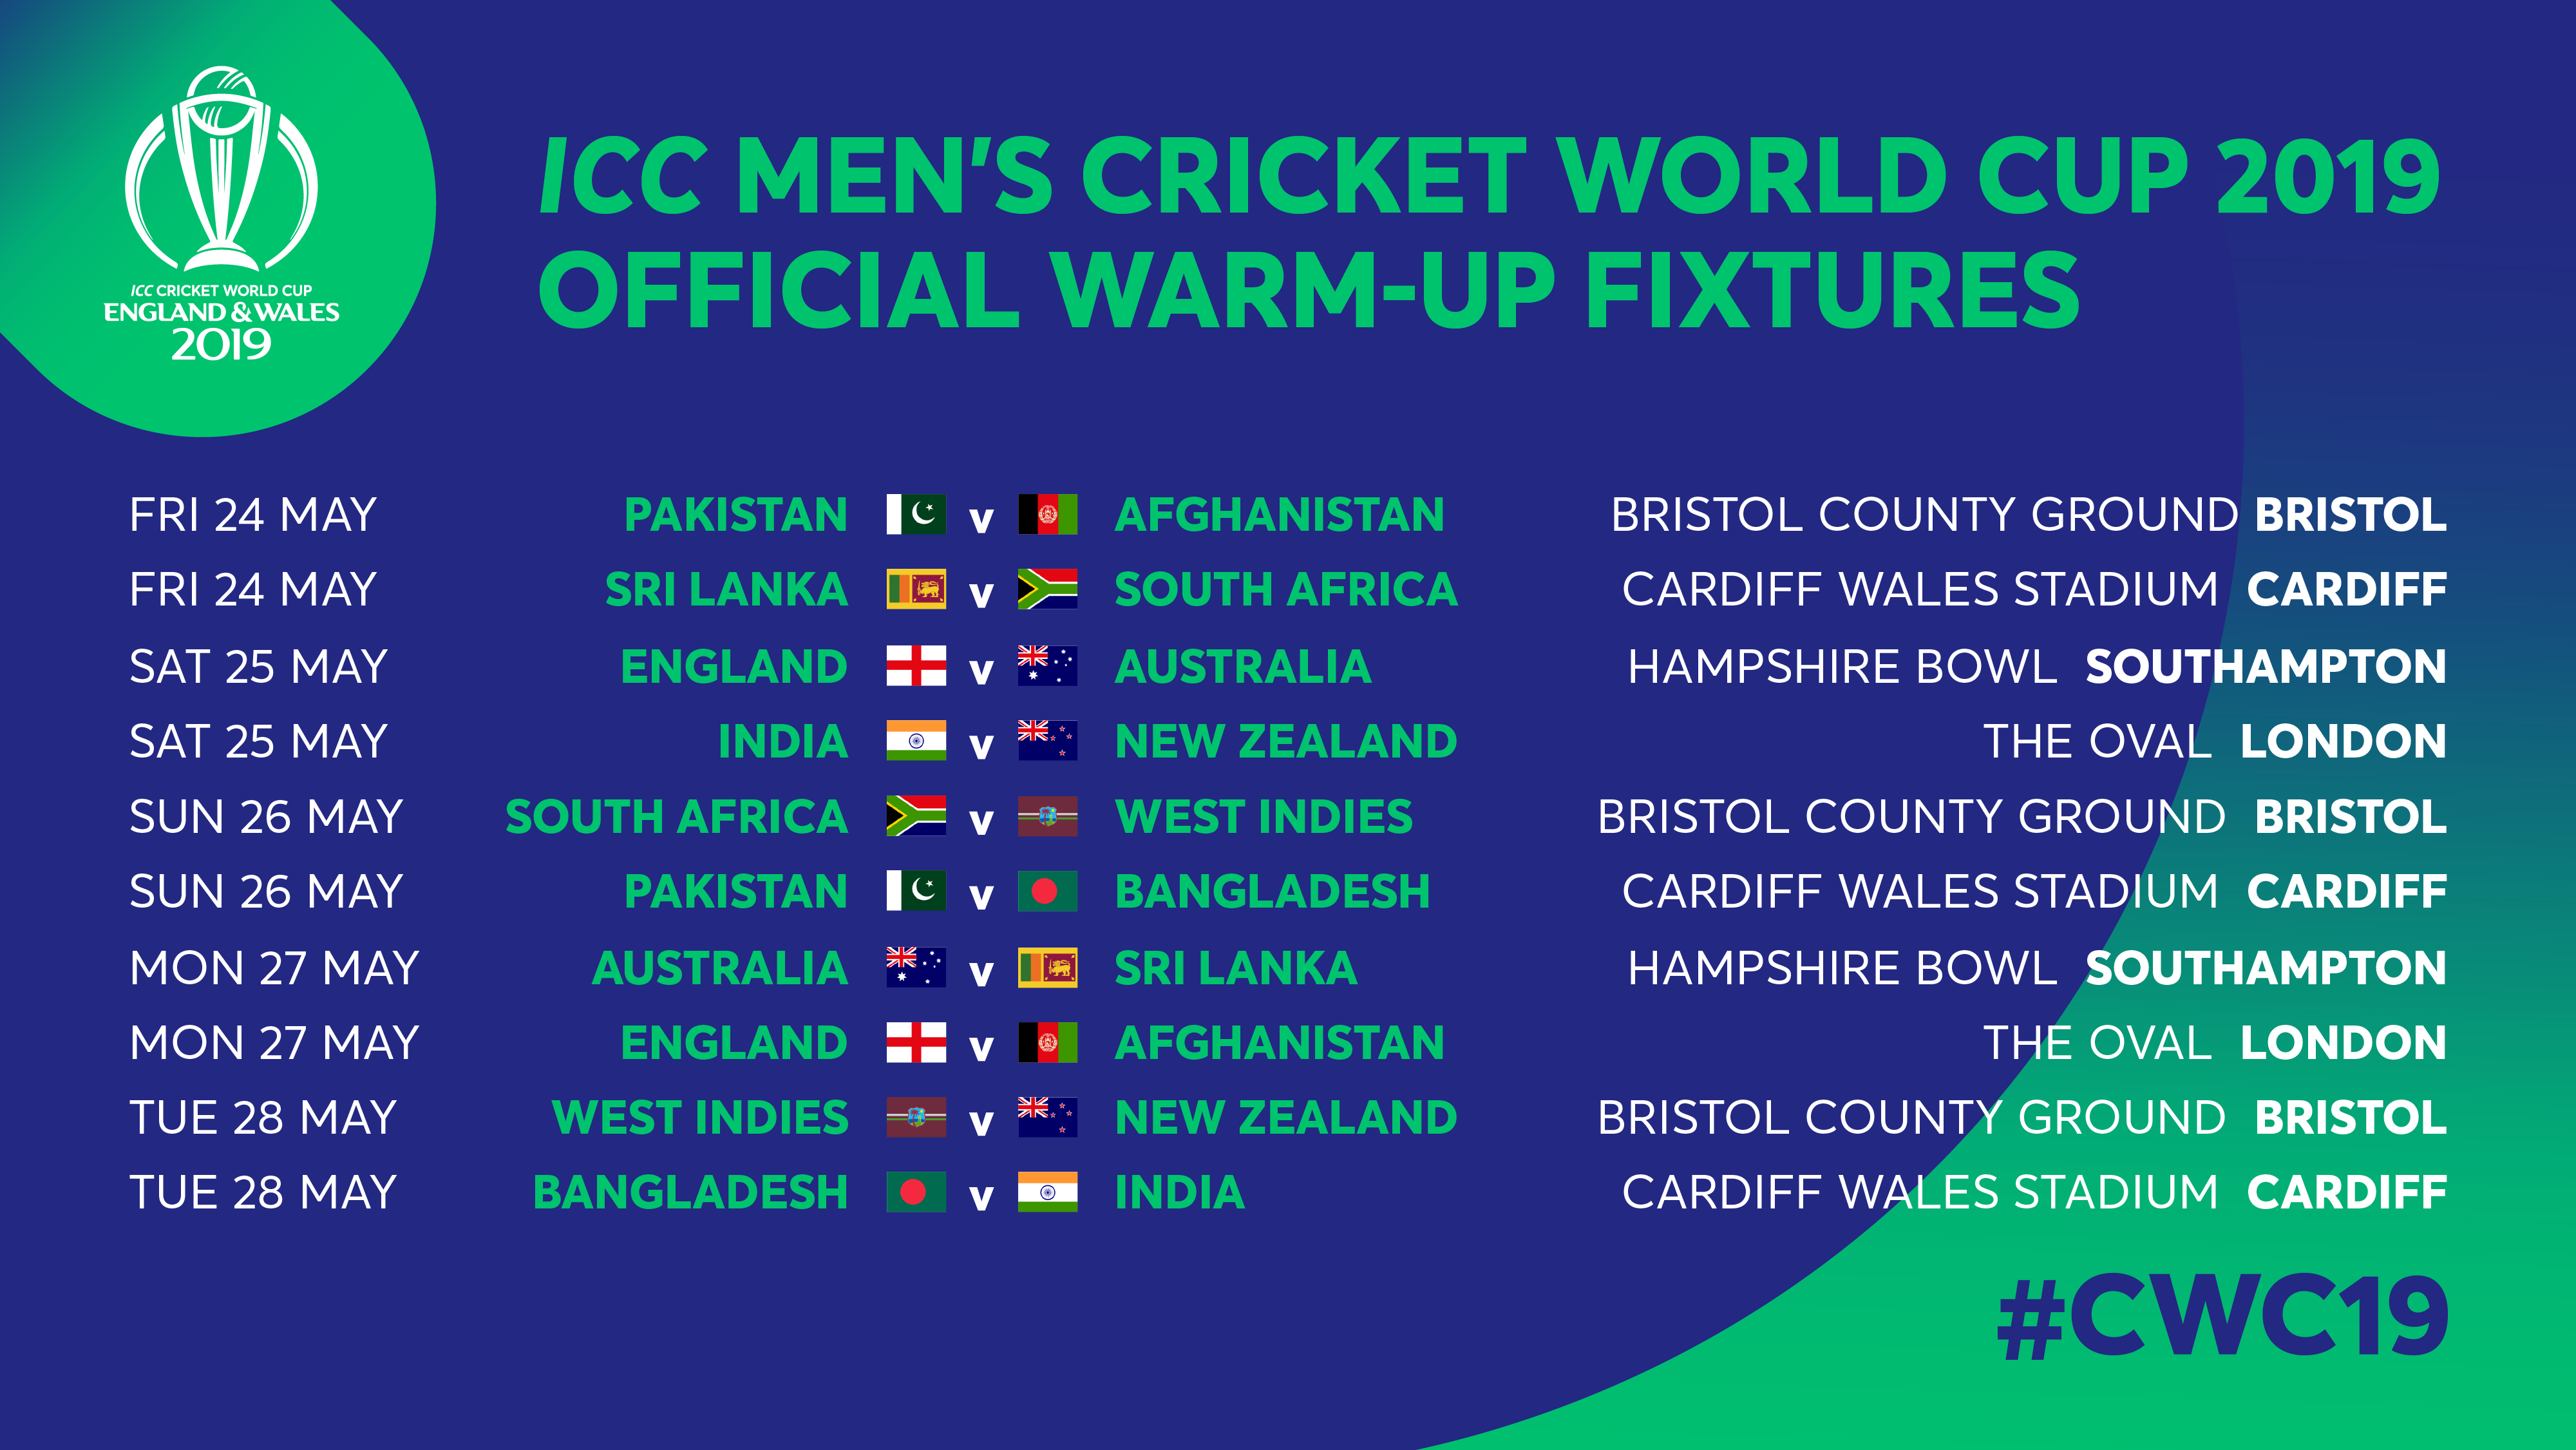 World Cup warm-up fixtures in May - Inside Recent